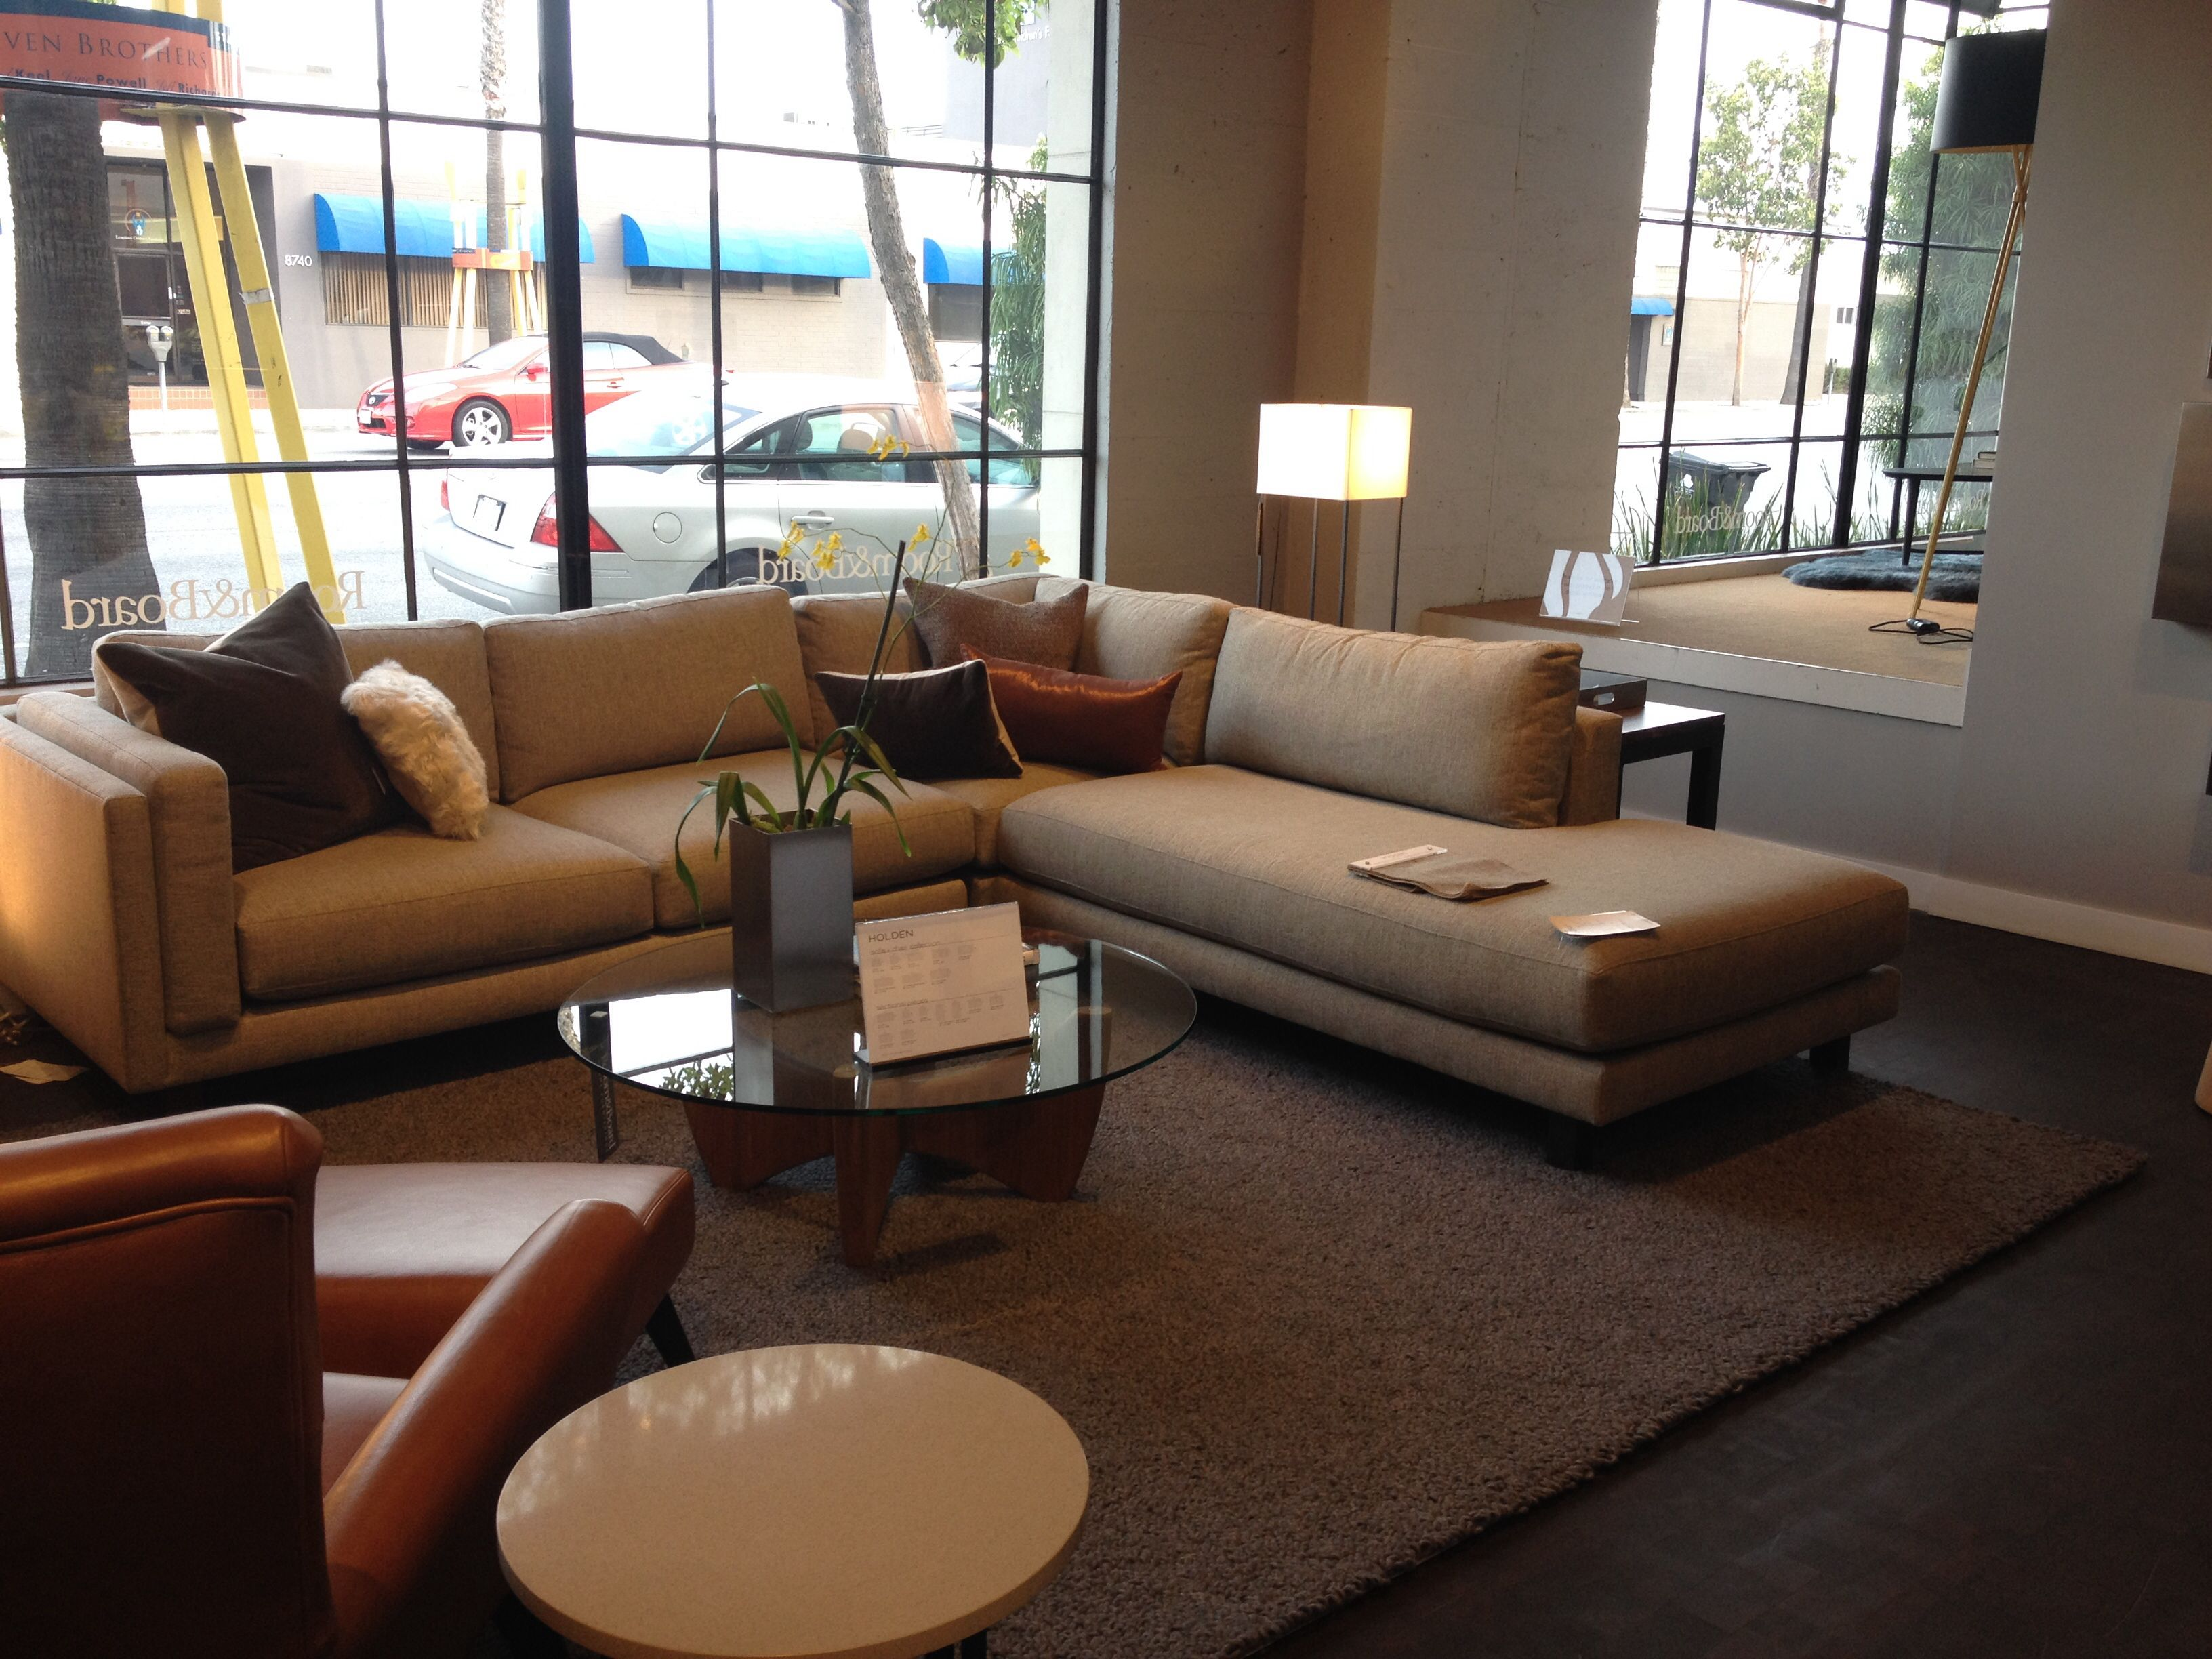 Room and Board Holden sectional $3797 112 x 107 Couch sofa